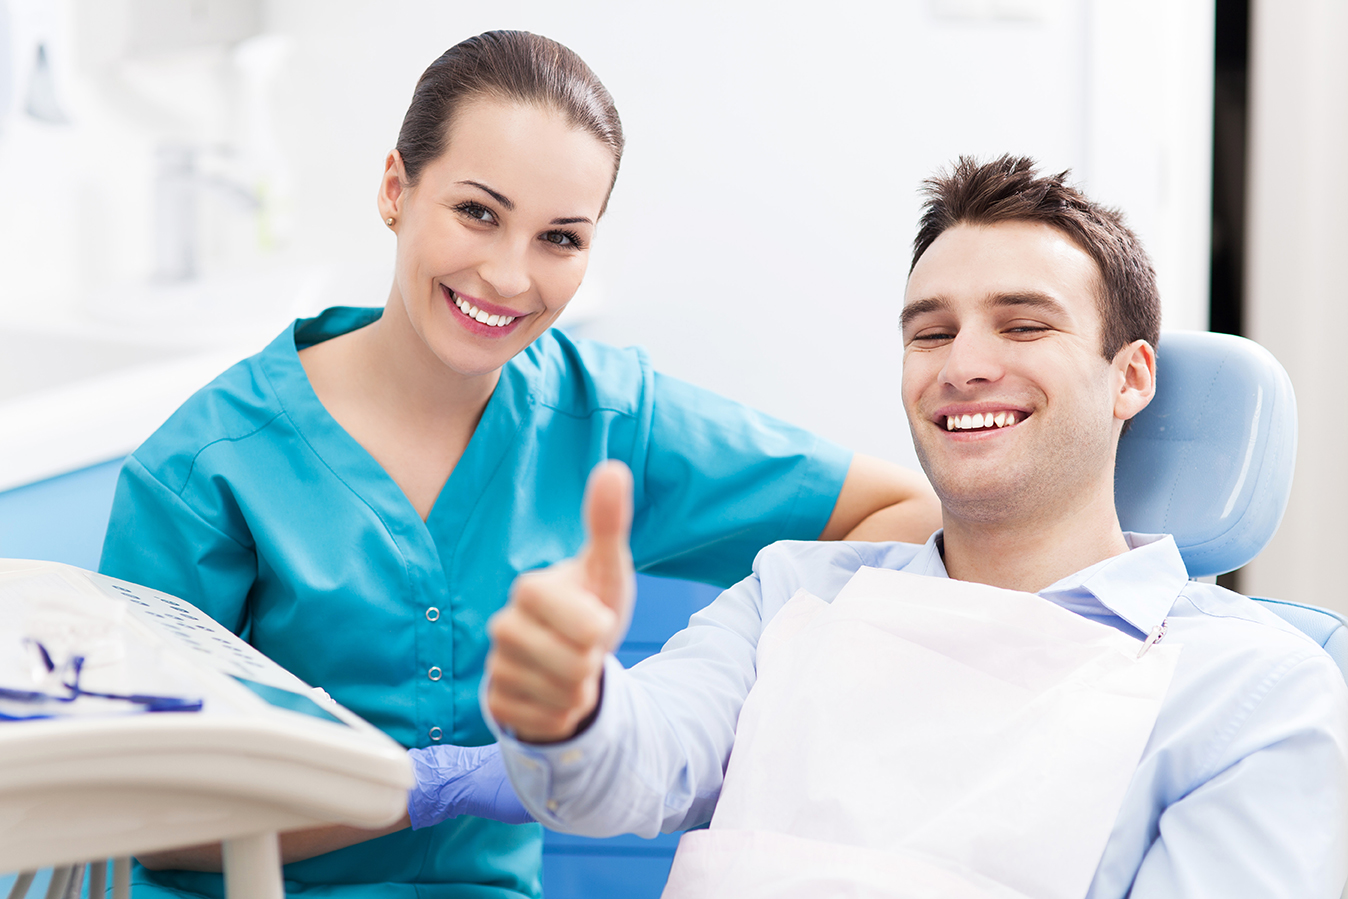 Dental practice goals, revenue, hygiene production, employee morale, membership plan, new patients